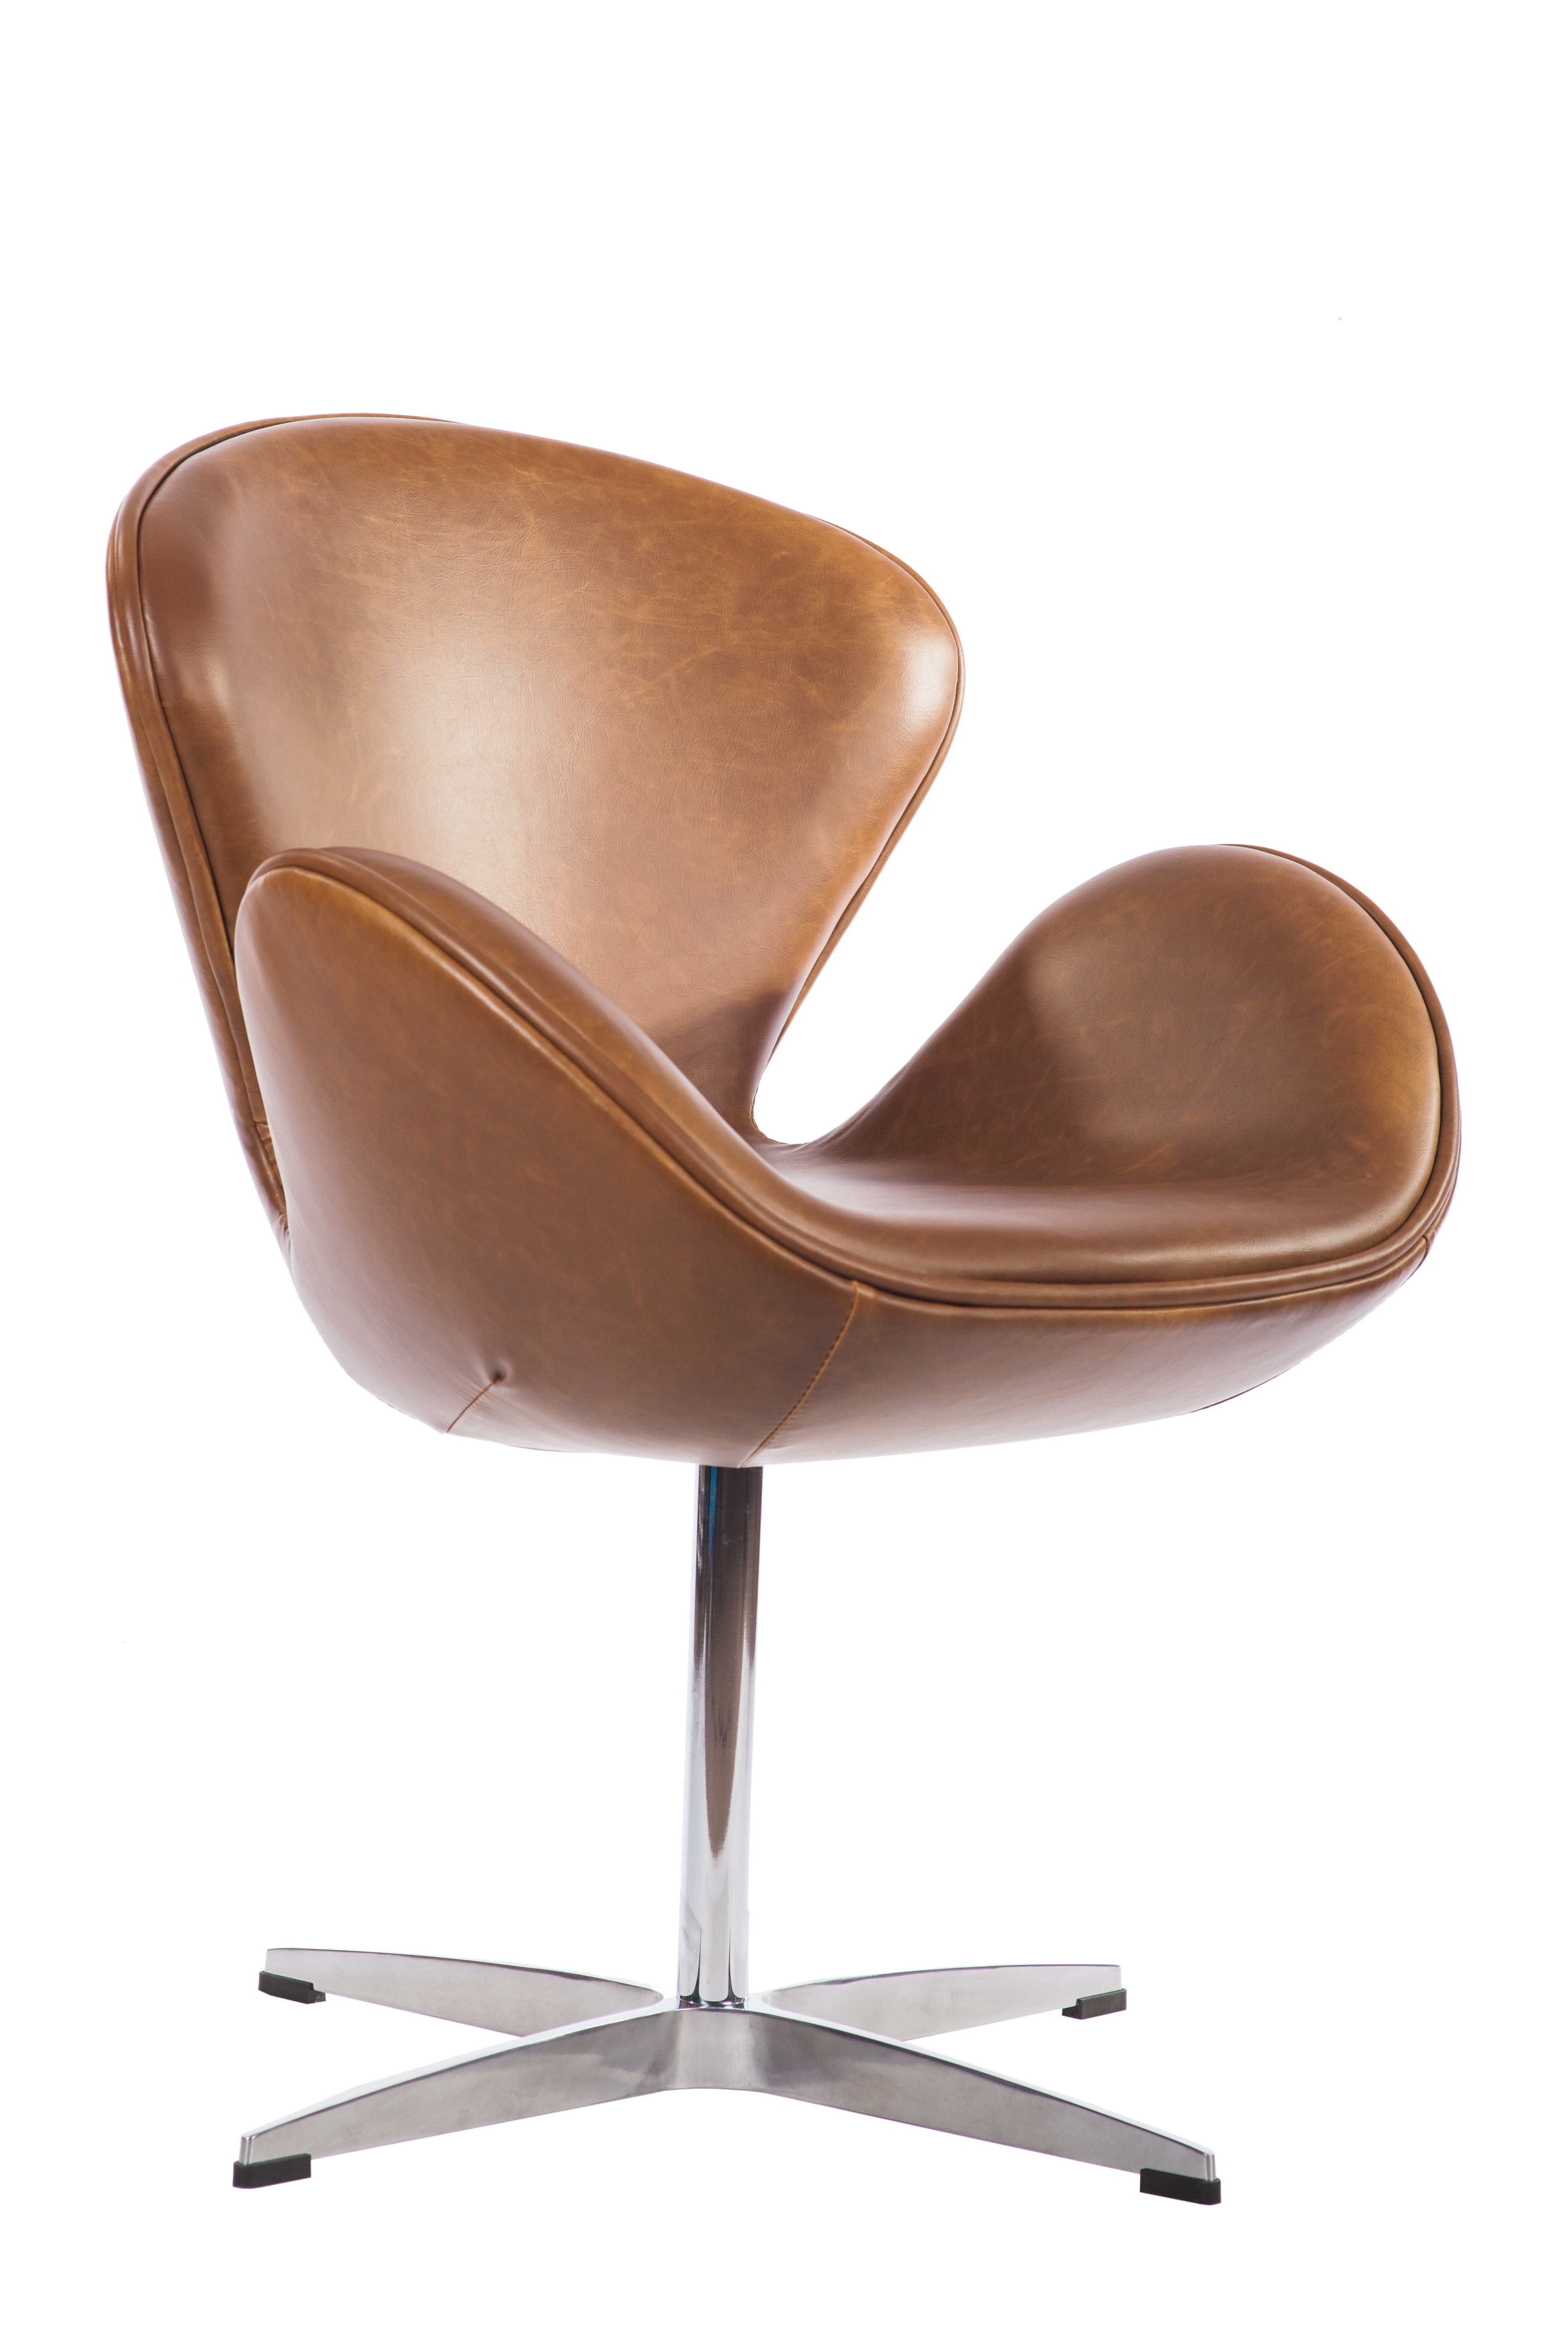 Mid Century Classic Arne Jacobsen Style Swan Replica Chair With Pu Leather Walmart Com Walmart Com